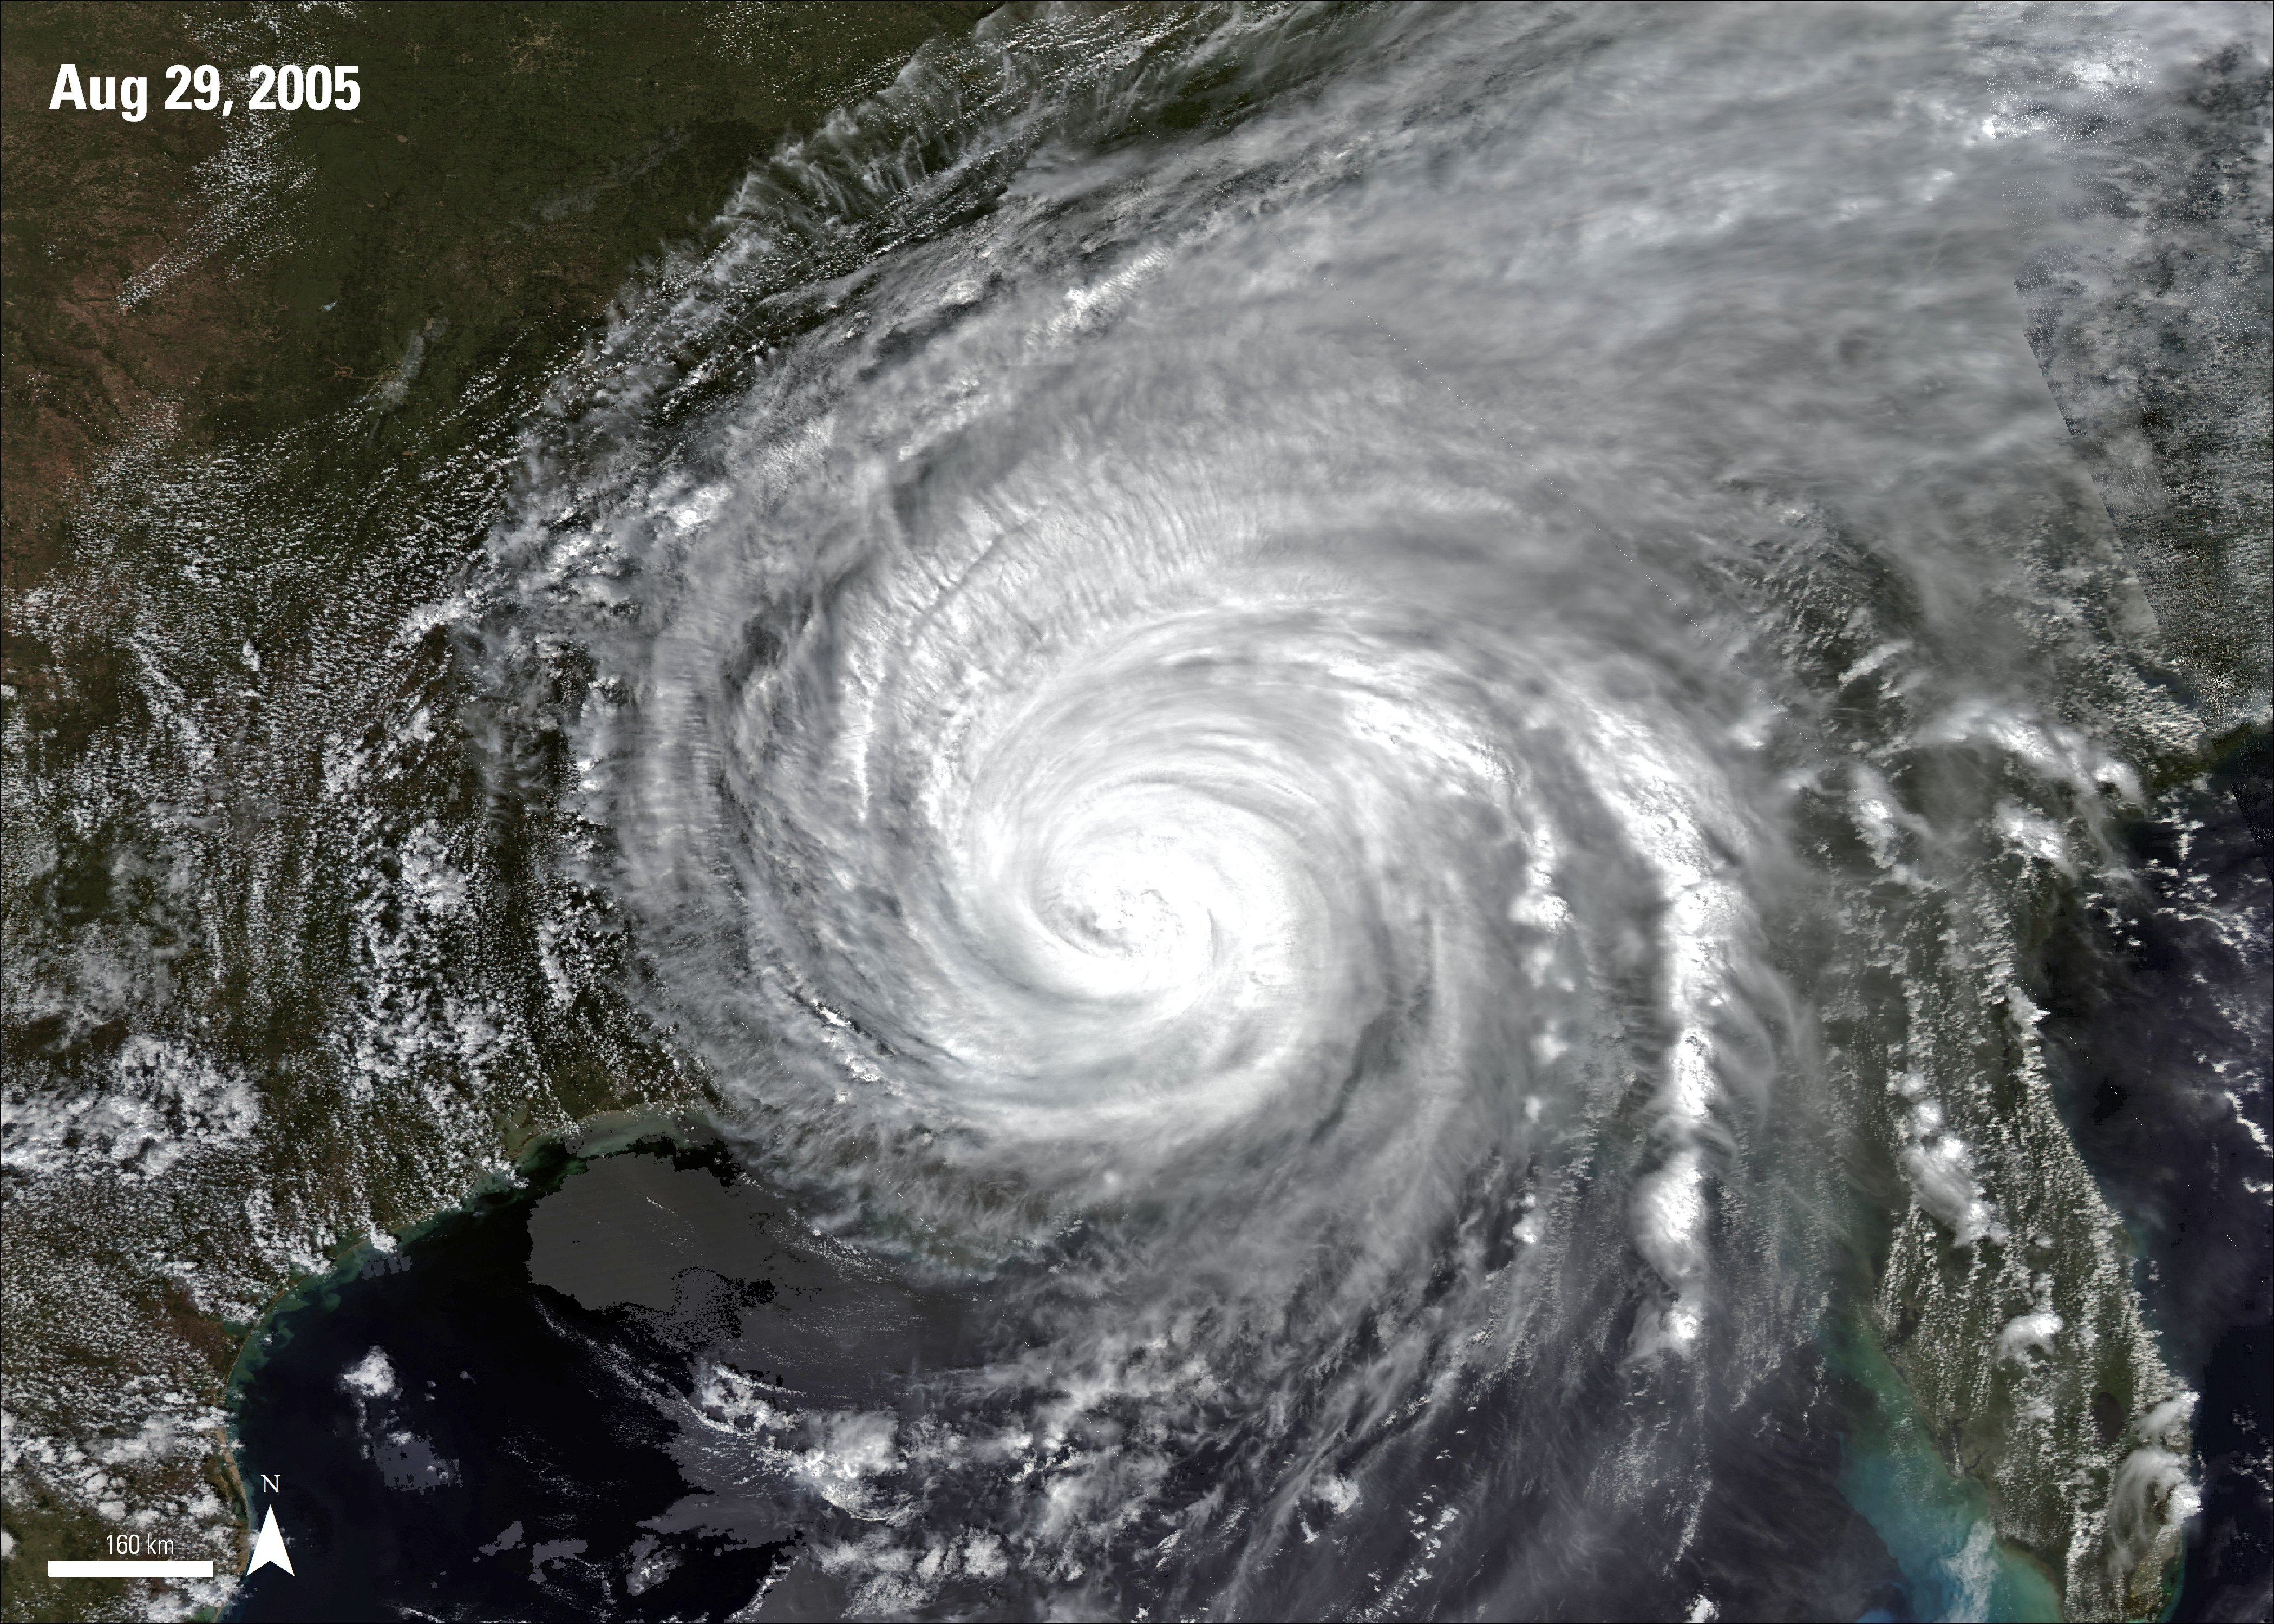 MODIS surface reflectance imagery over Hurricane Katrina, acquired August 29, 2005.